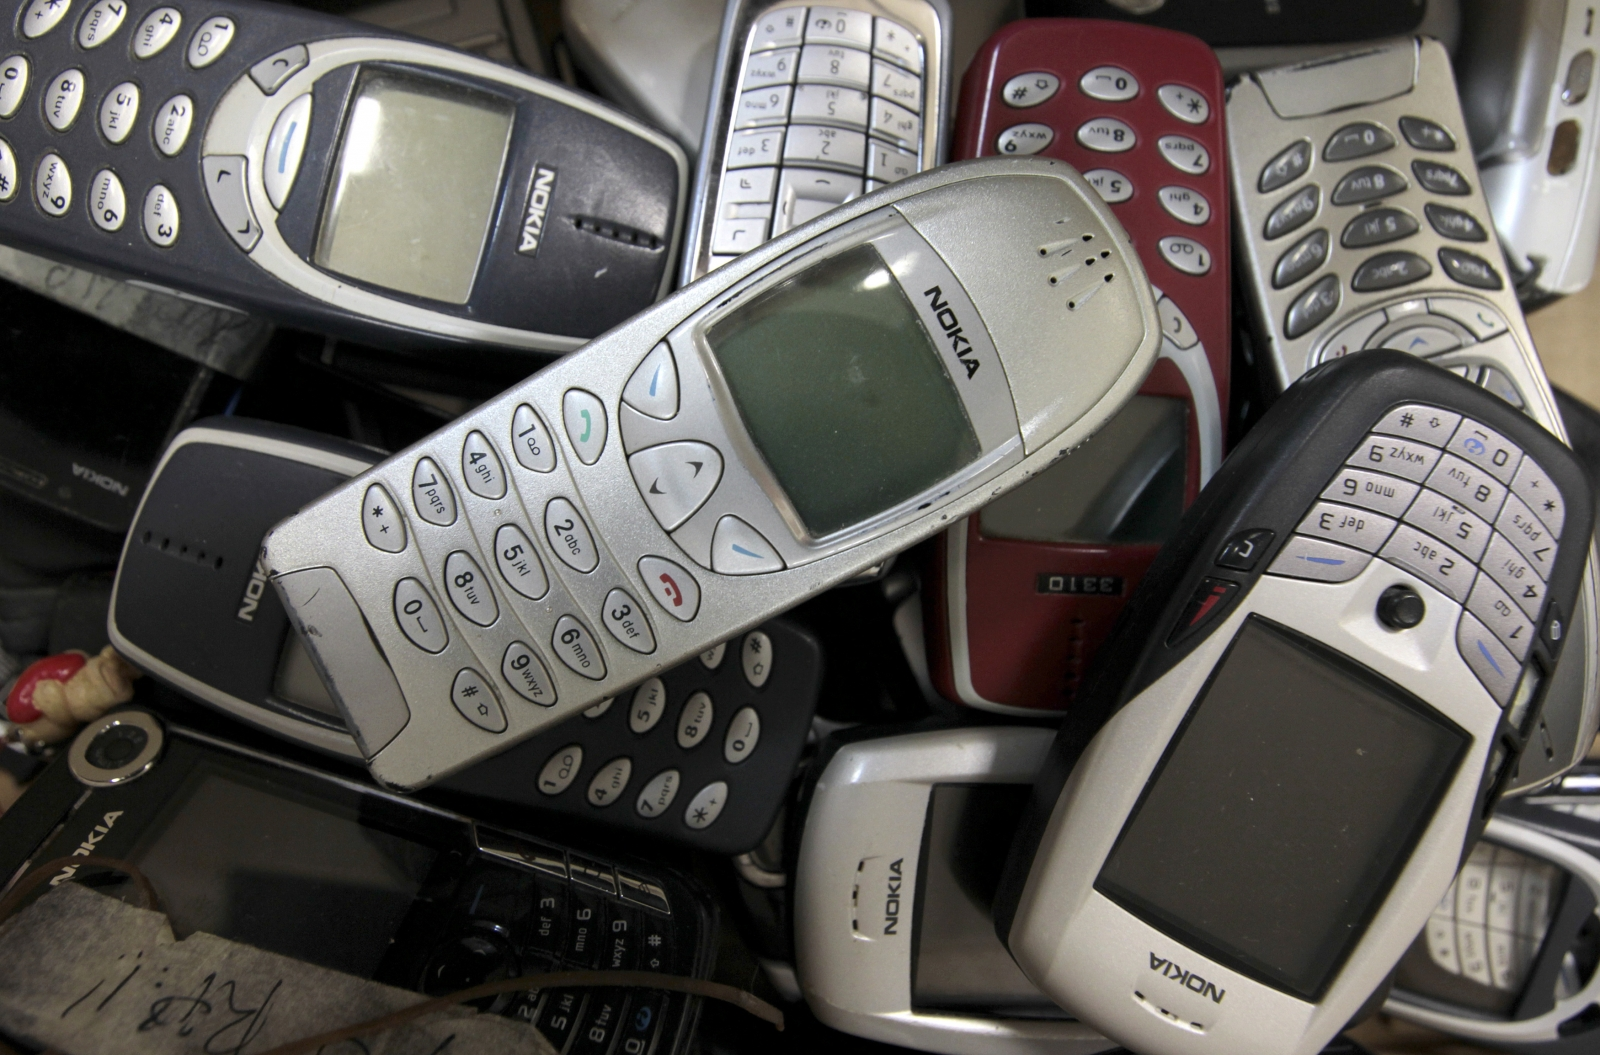 2G mobile phones